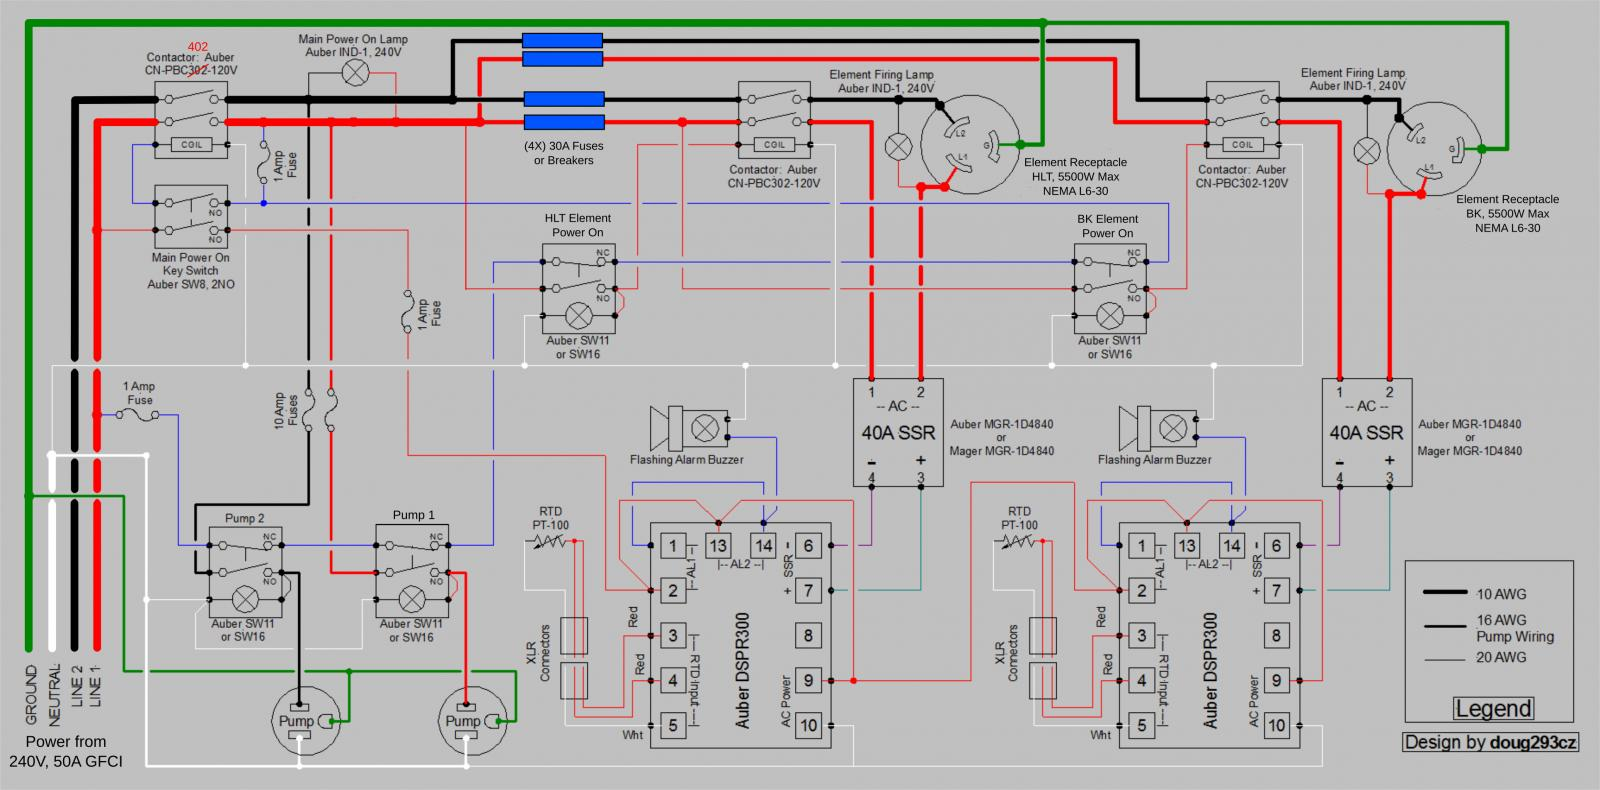 50 Amp Panel Running 2 5500 Elements Beer One Wiring Diagram Http Attachmentphpattachmentid386823